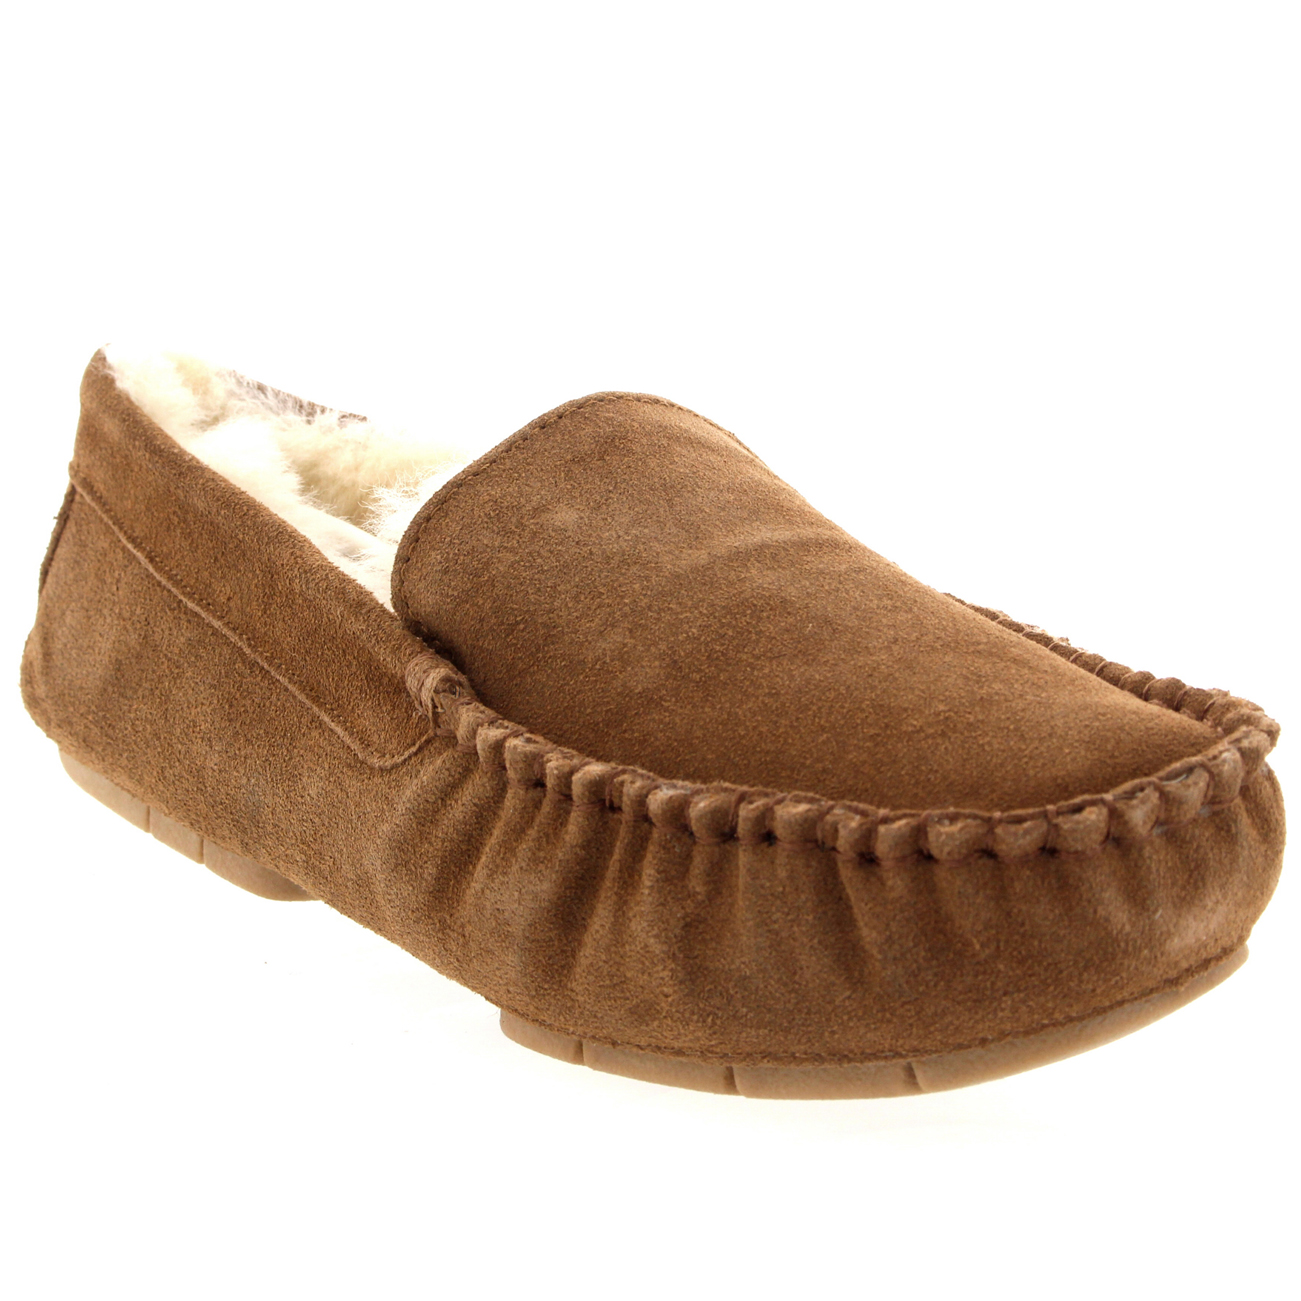 Slippers Australia Mens Genuine Australian Fur Sheepskin Fur Lined Suede